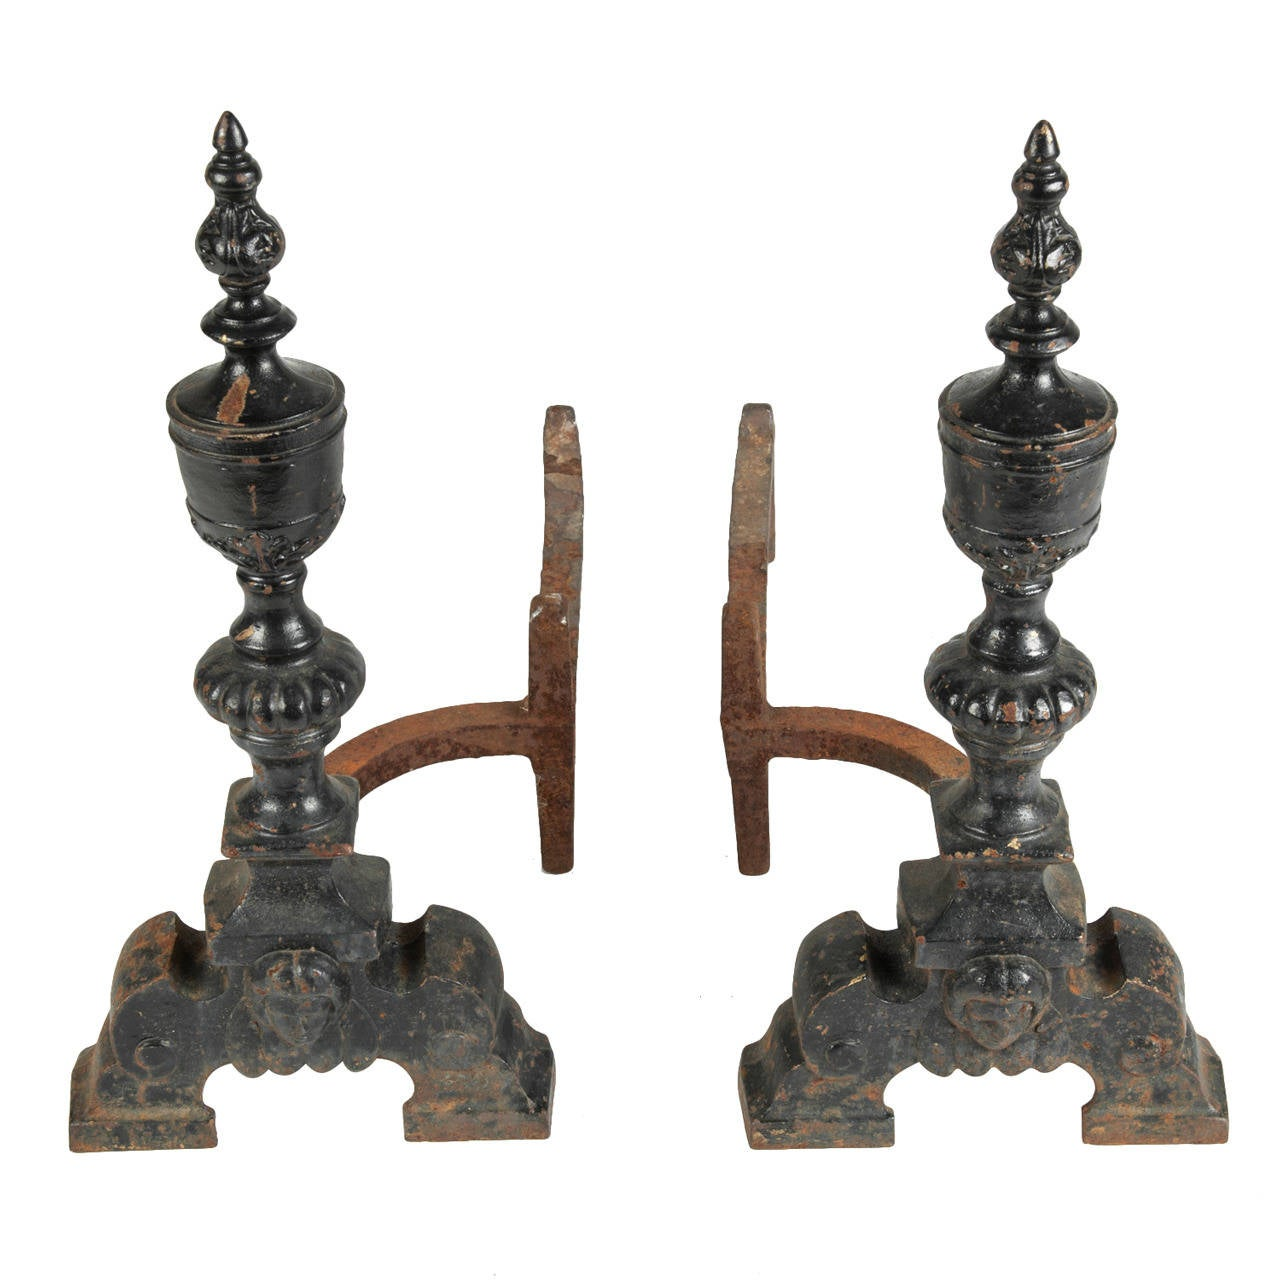 Antique Wrought Iron Andirons At 1stdibs